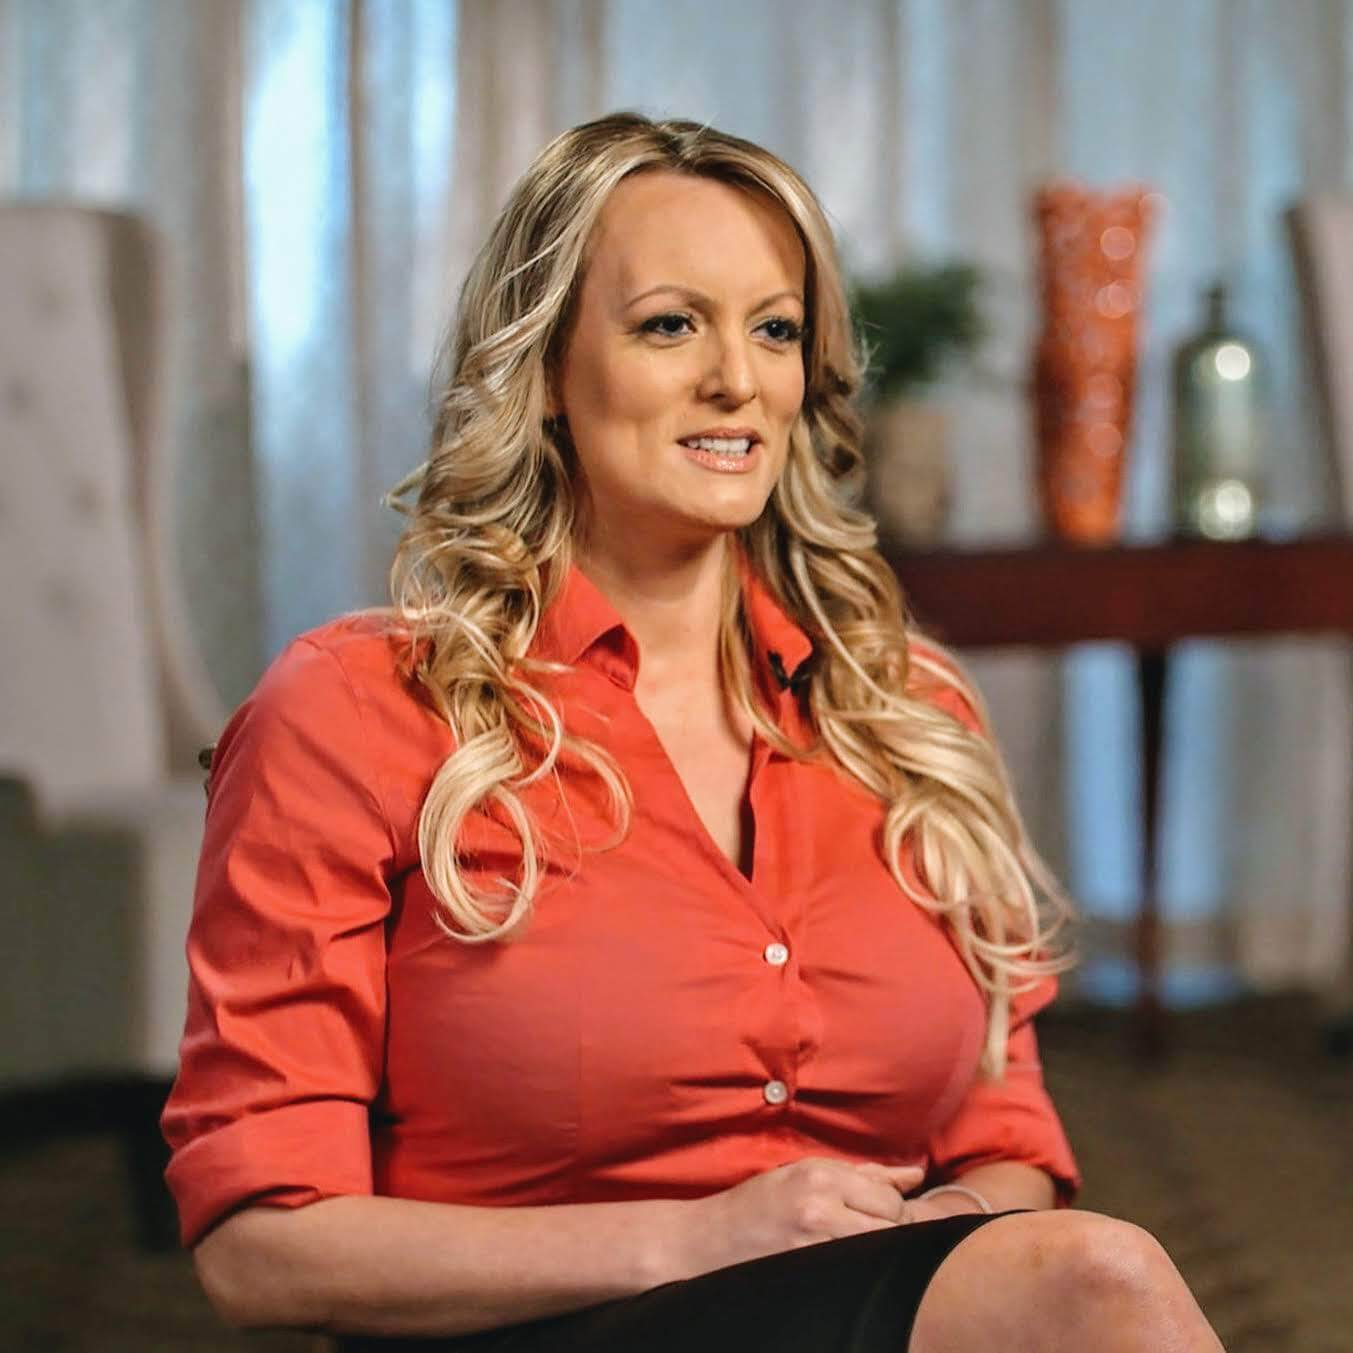 Stormy Daniels in her interview with Anderson Cooper